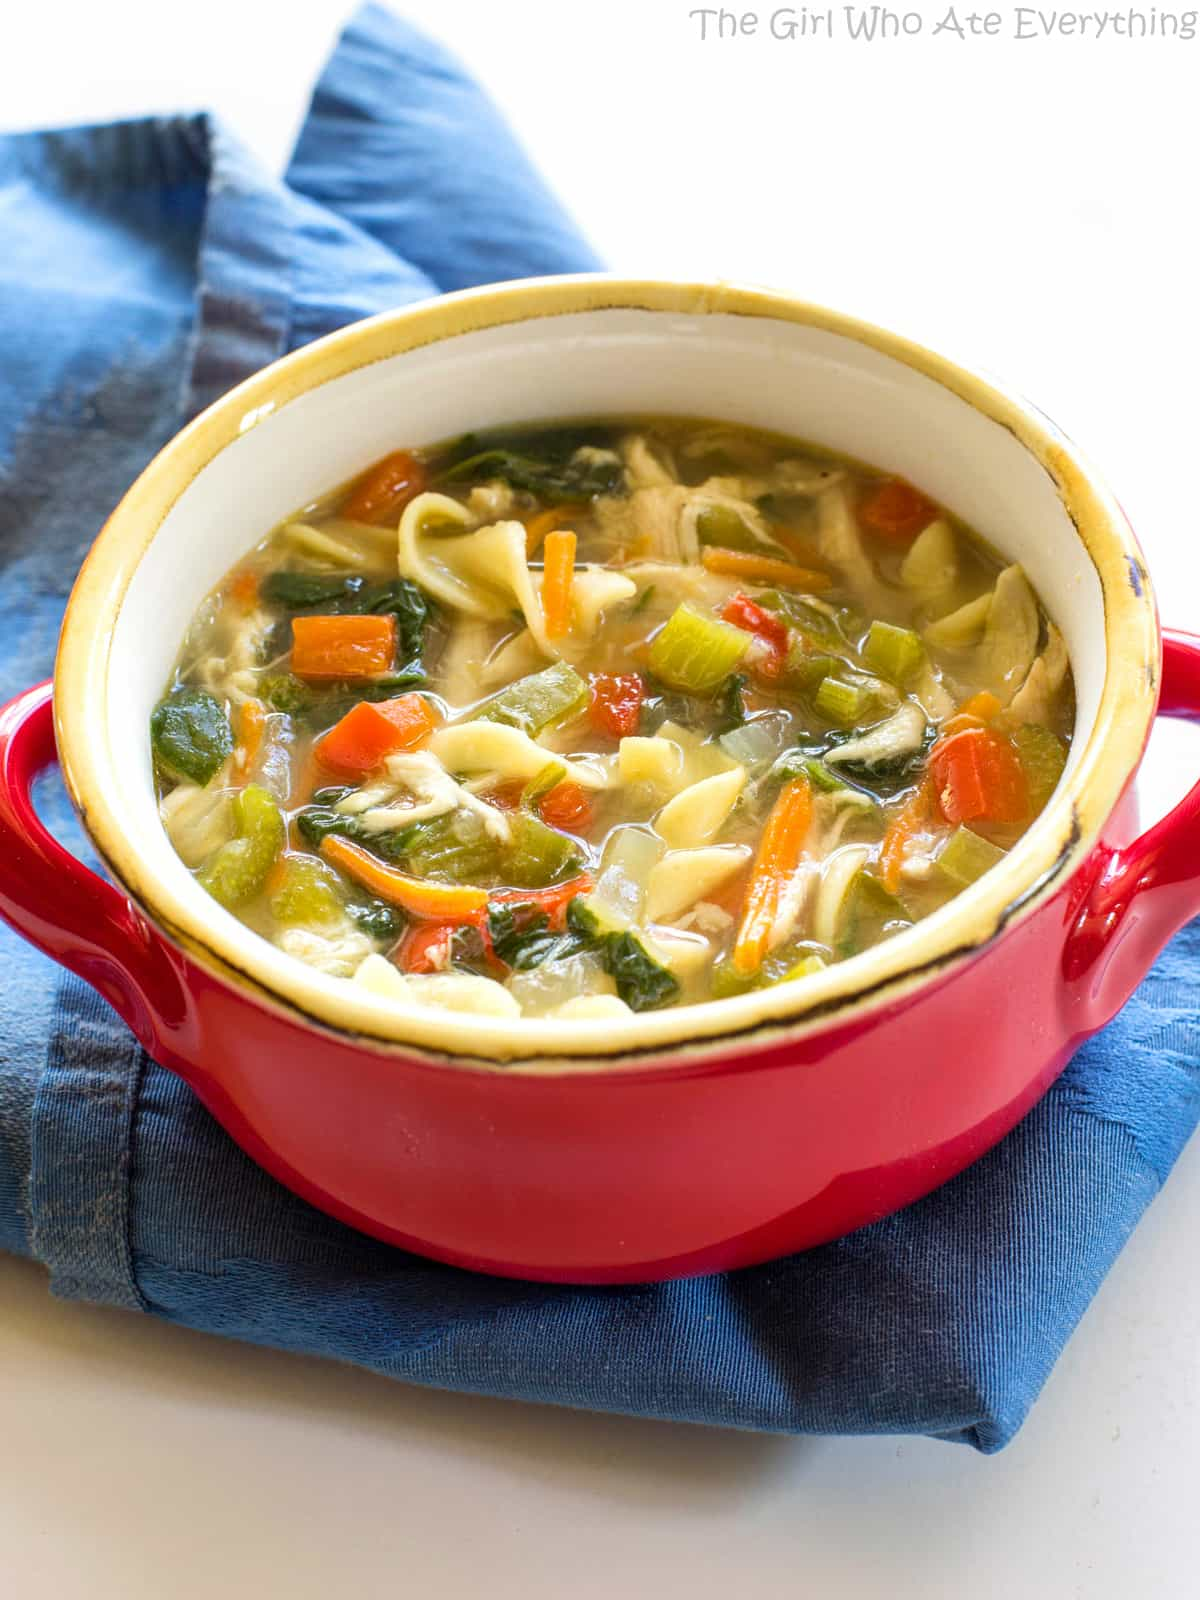 Homemade vegetable soup with chicken broth